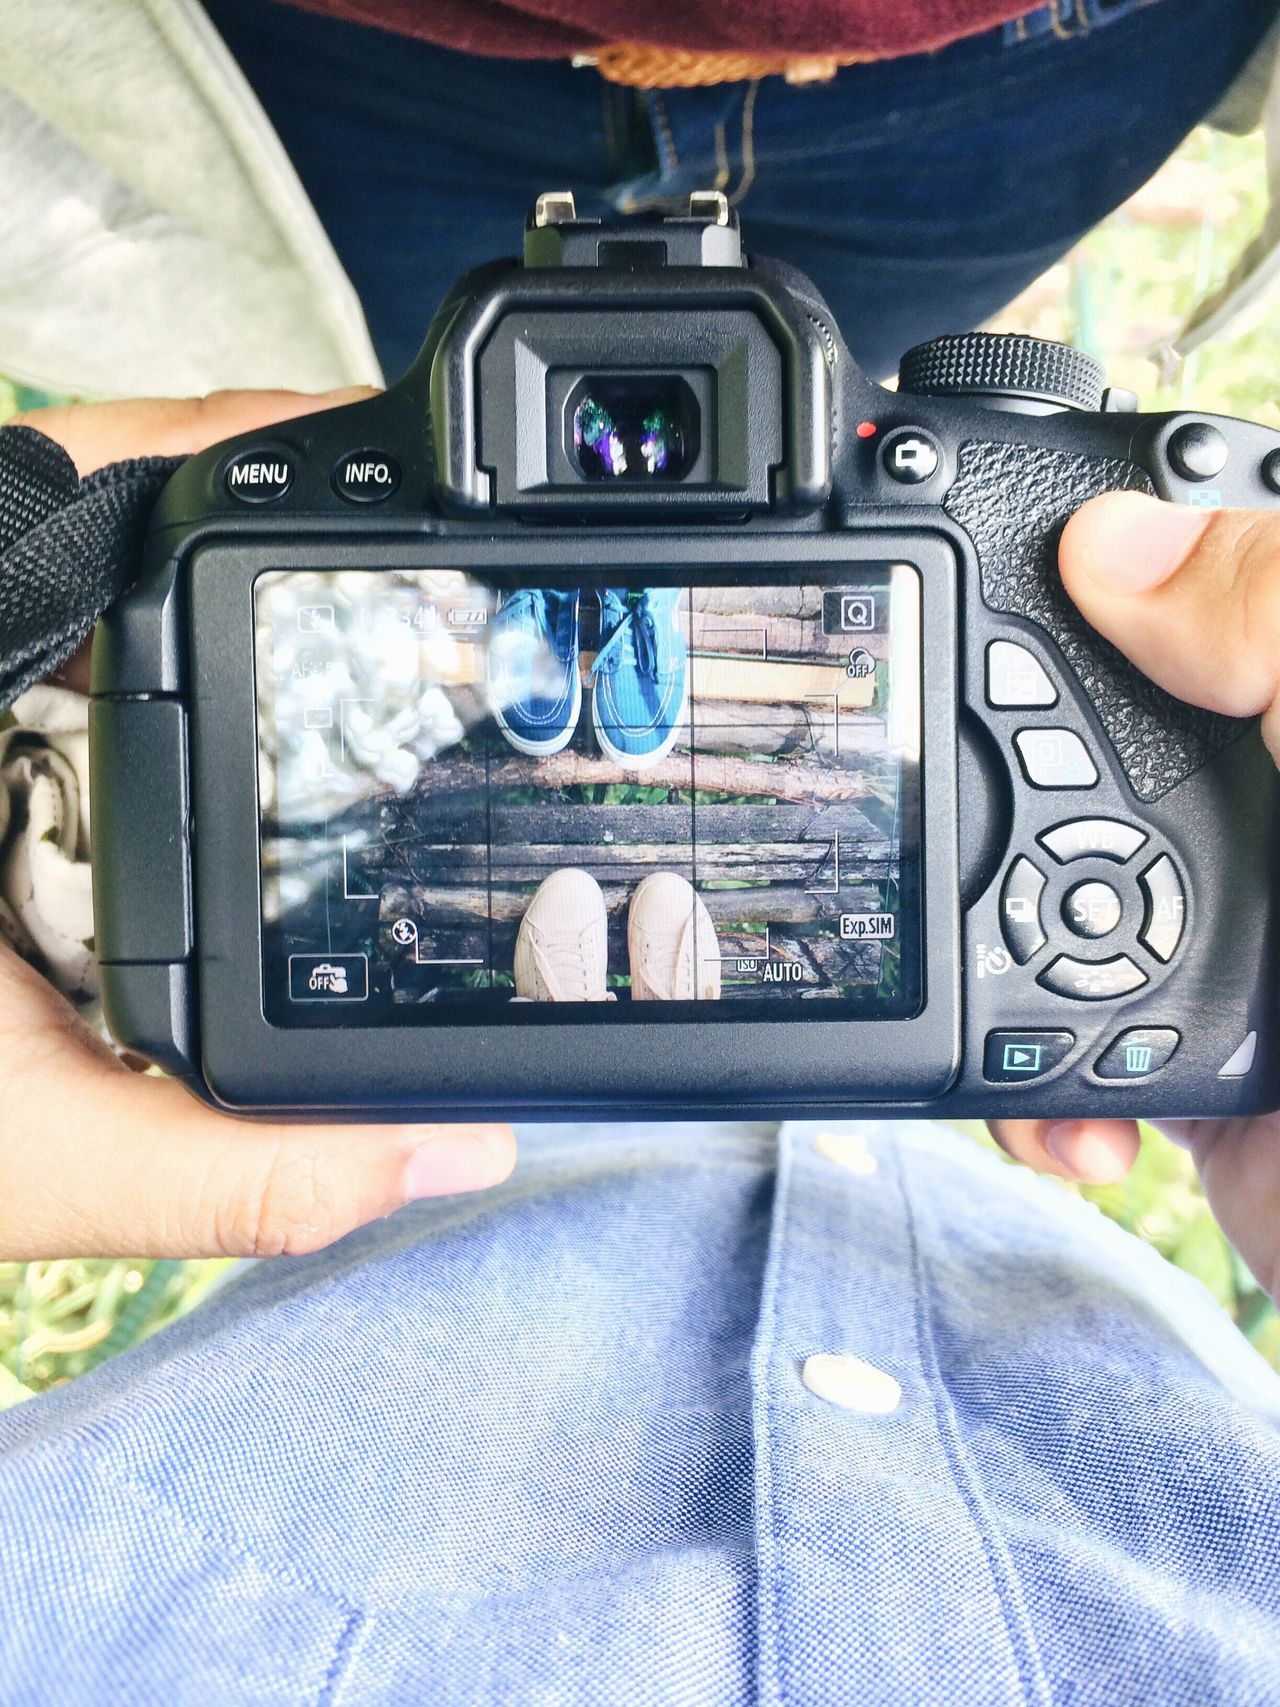 Eyeem Philippines Shoes Sneakers Of EyeEm Sneakers Photography Themes Photographing Human Body Part Technology Device Screen Two People Camera - Photographic Equipment Close-up Men Women Adults Only Adult Human Arm People Human Hand Day Digital Viewfinder Outdoors